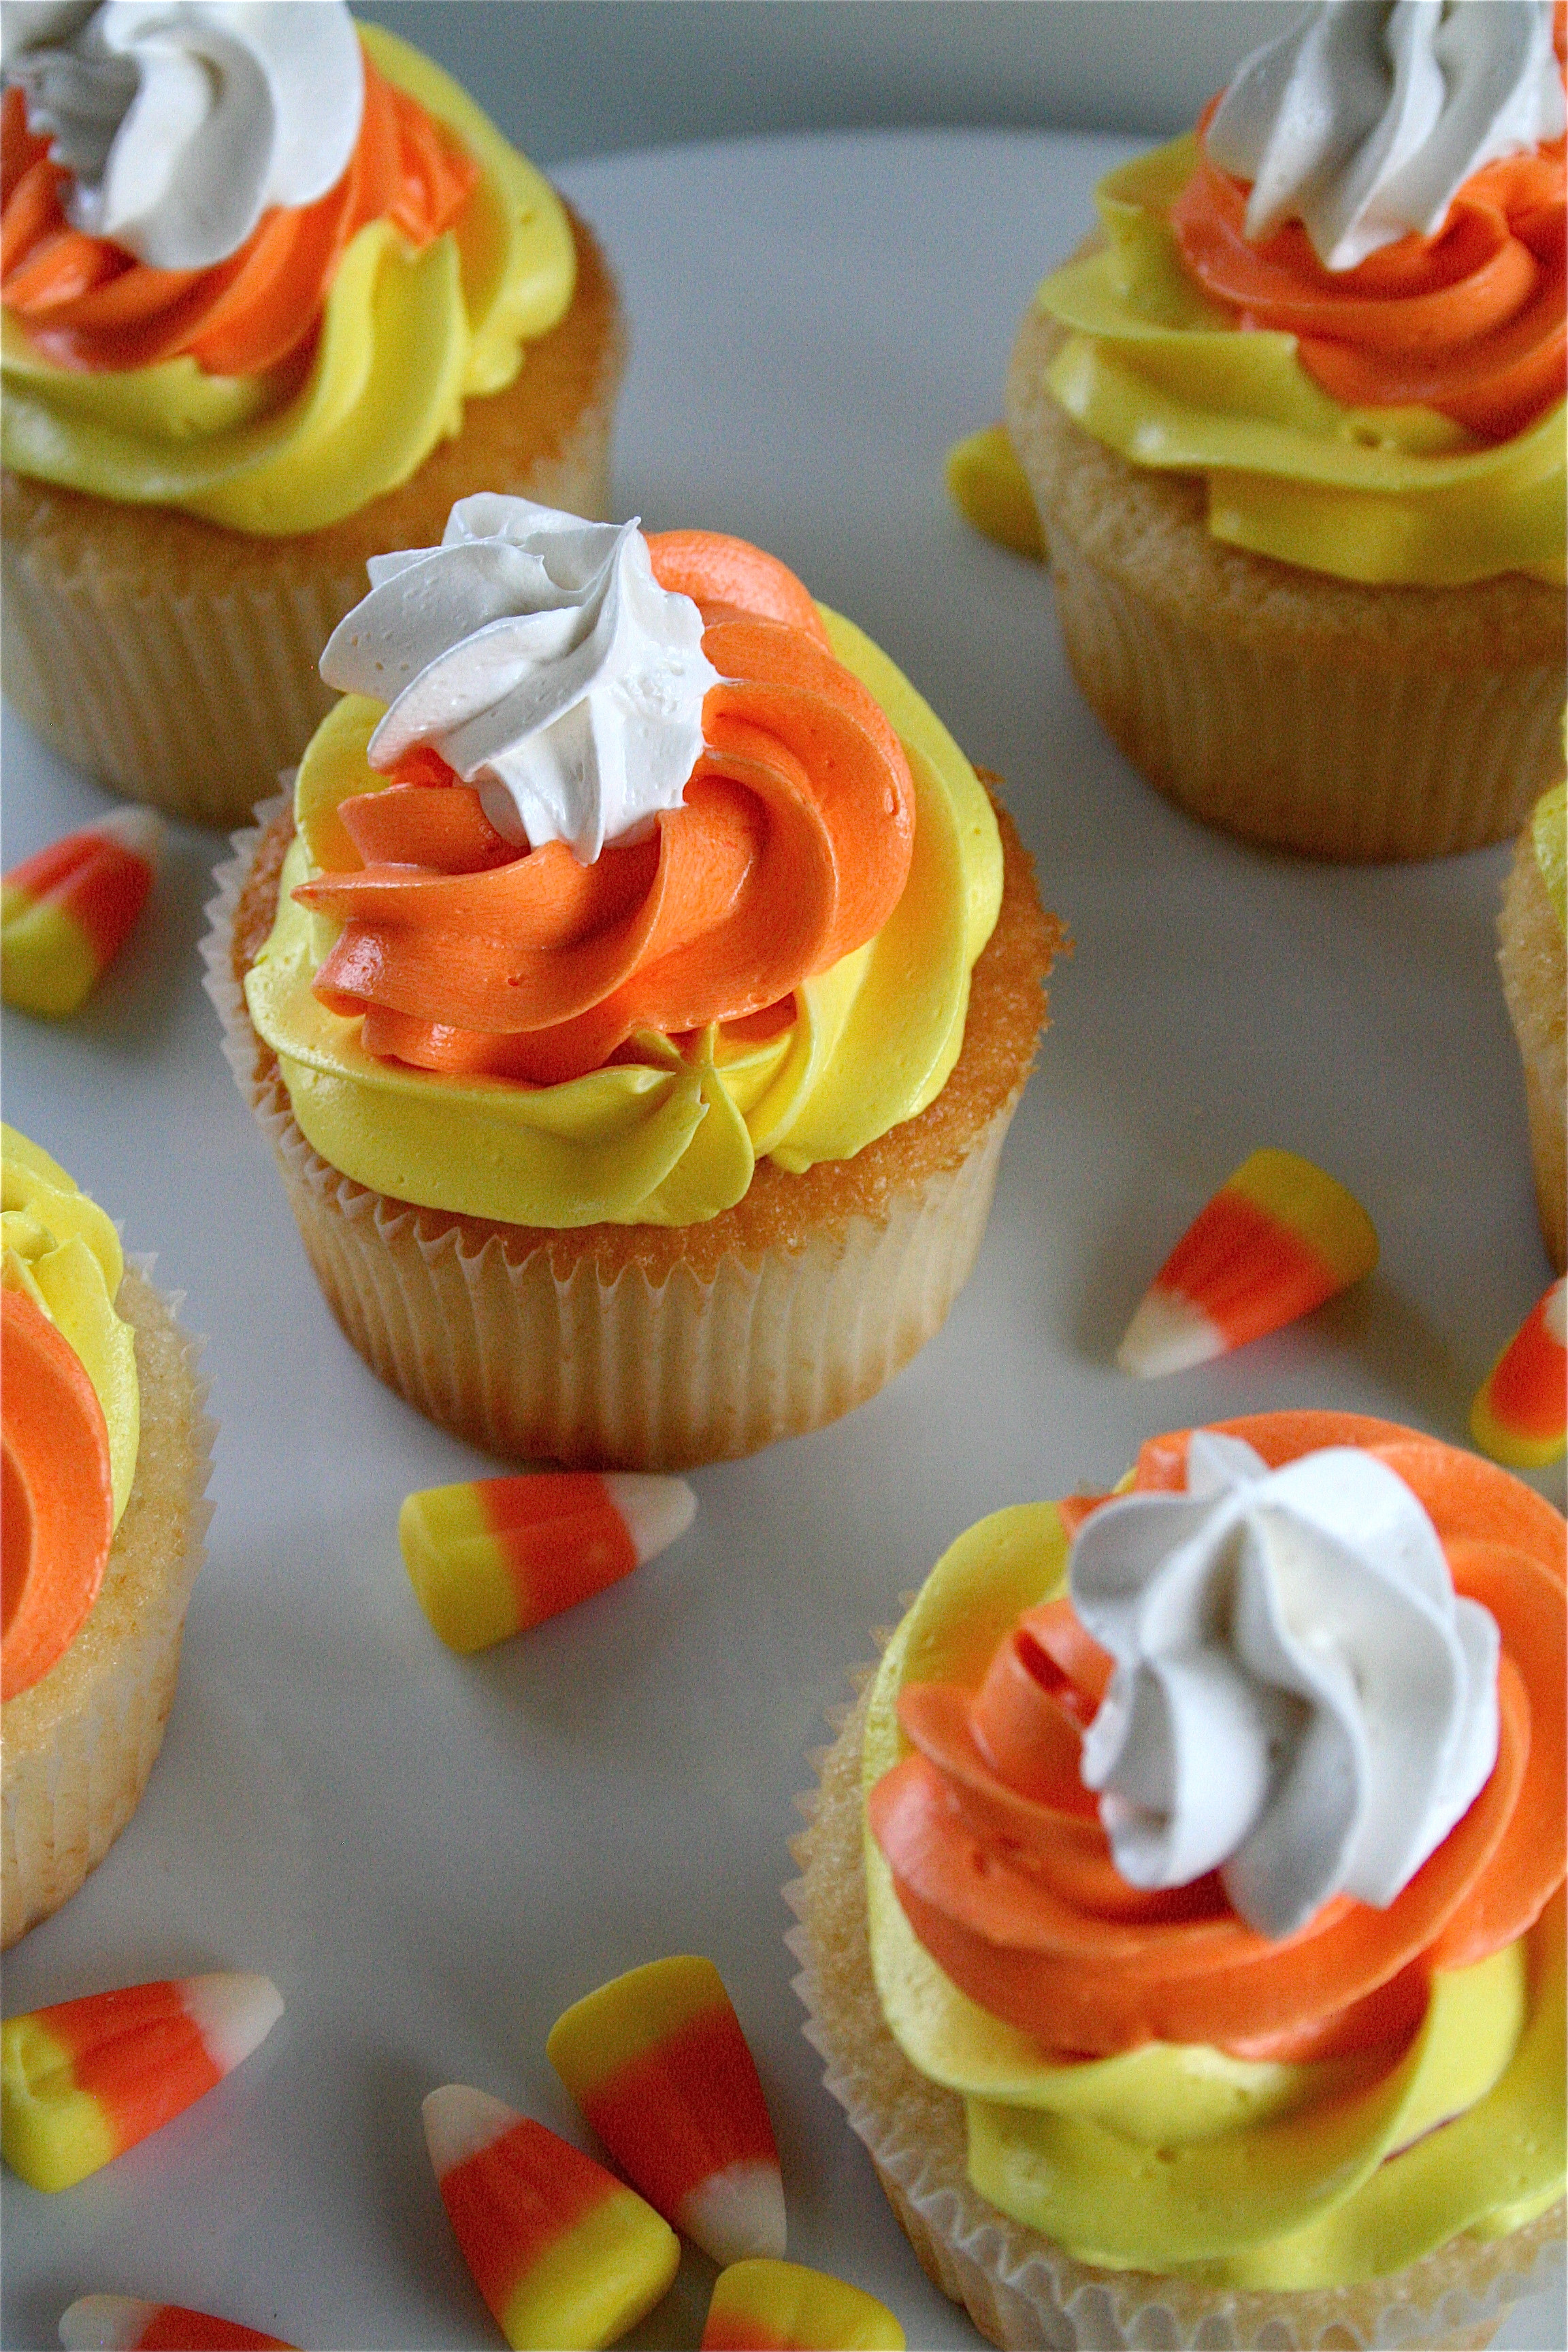 Cupcakes For Halloween  28 Cute Halloween Cupcakes Easy Recipes for Halloween